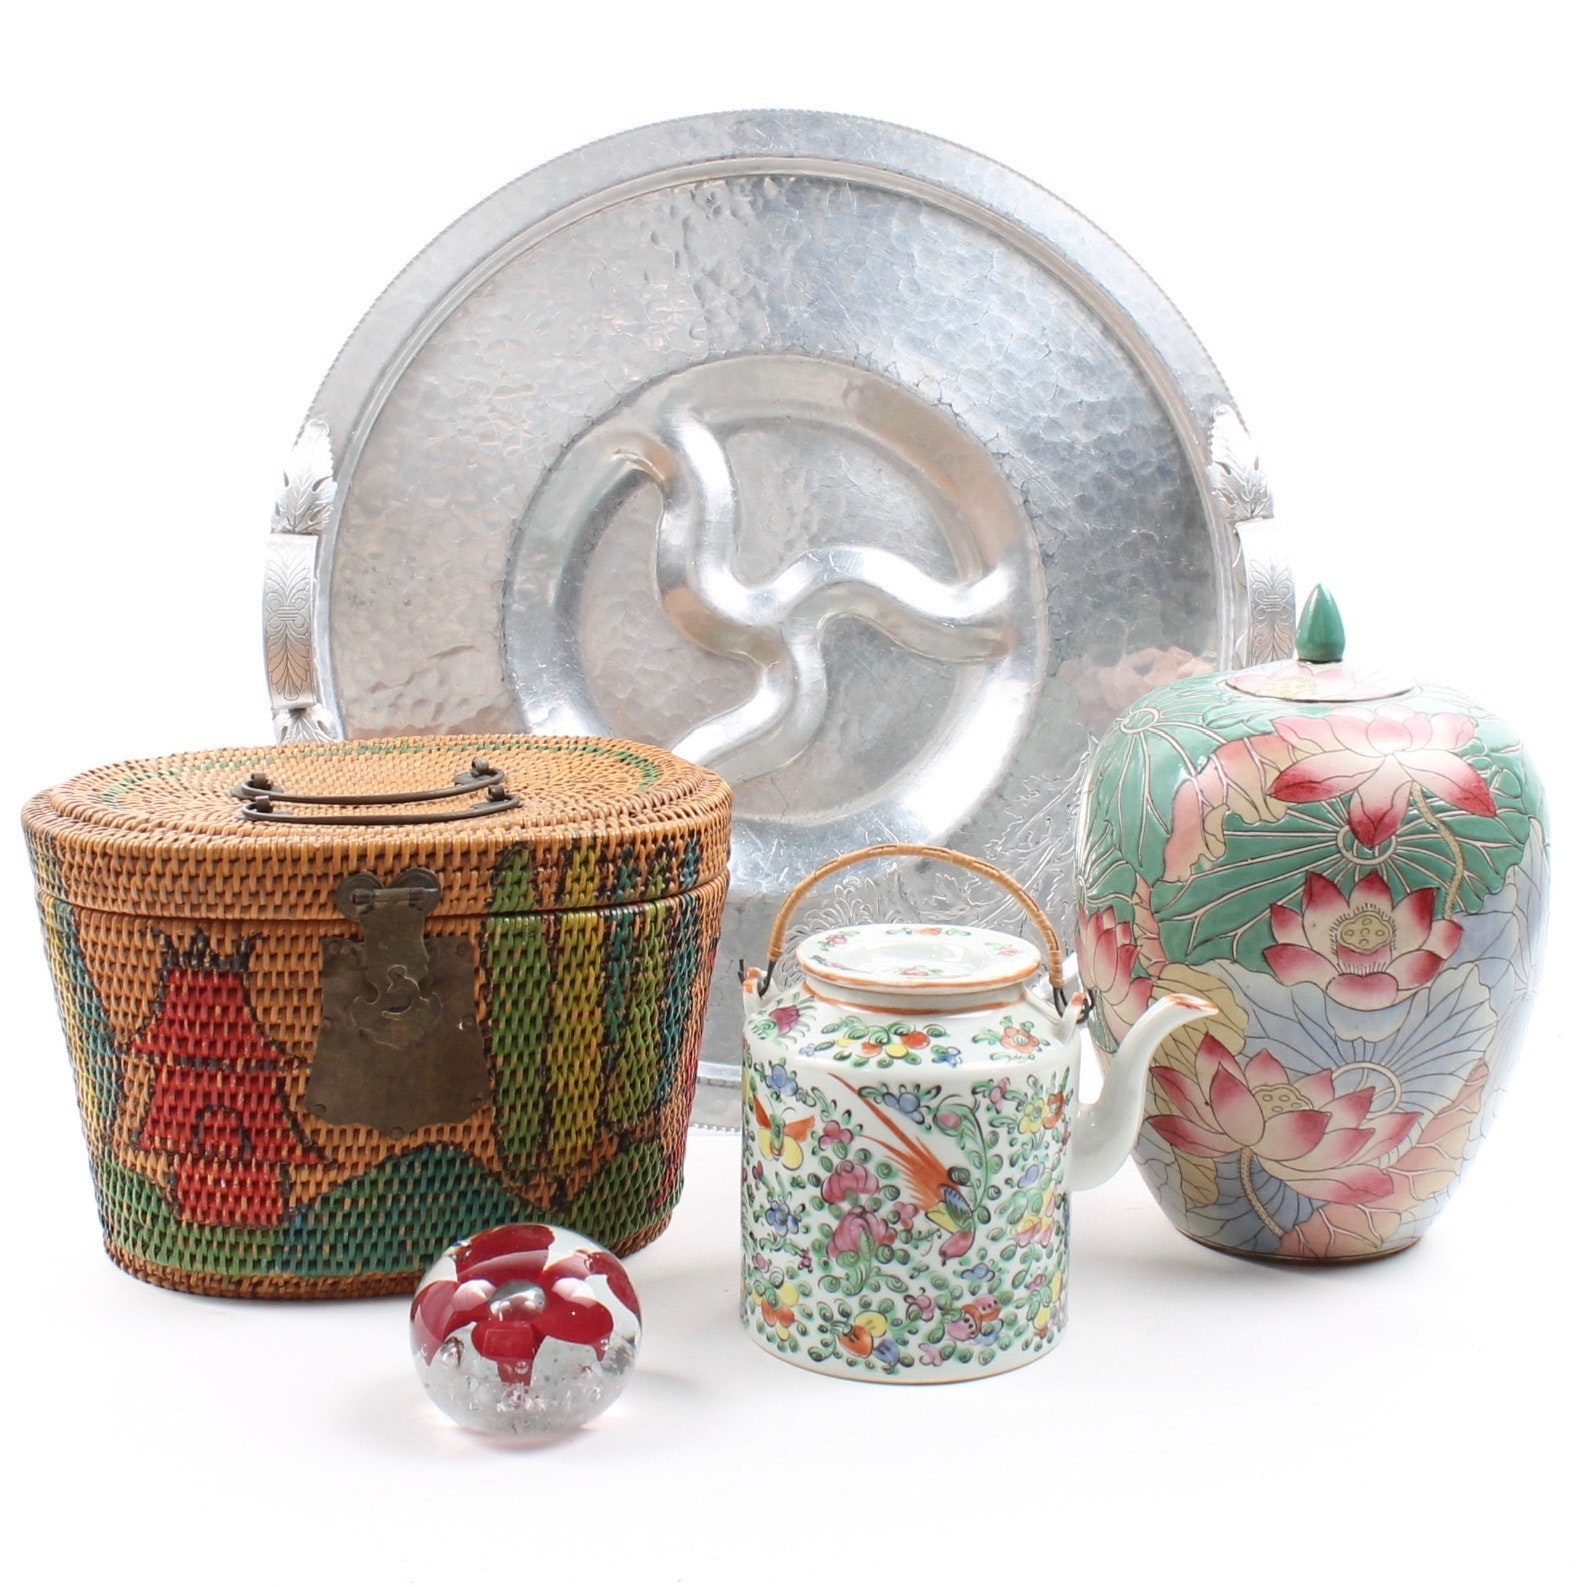 Decorative Collectibles Featuring a Chinese Export Teapot and Case